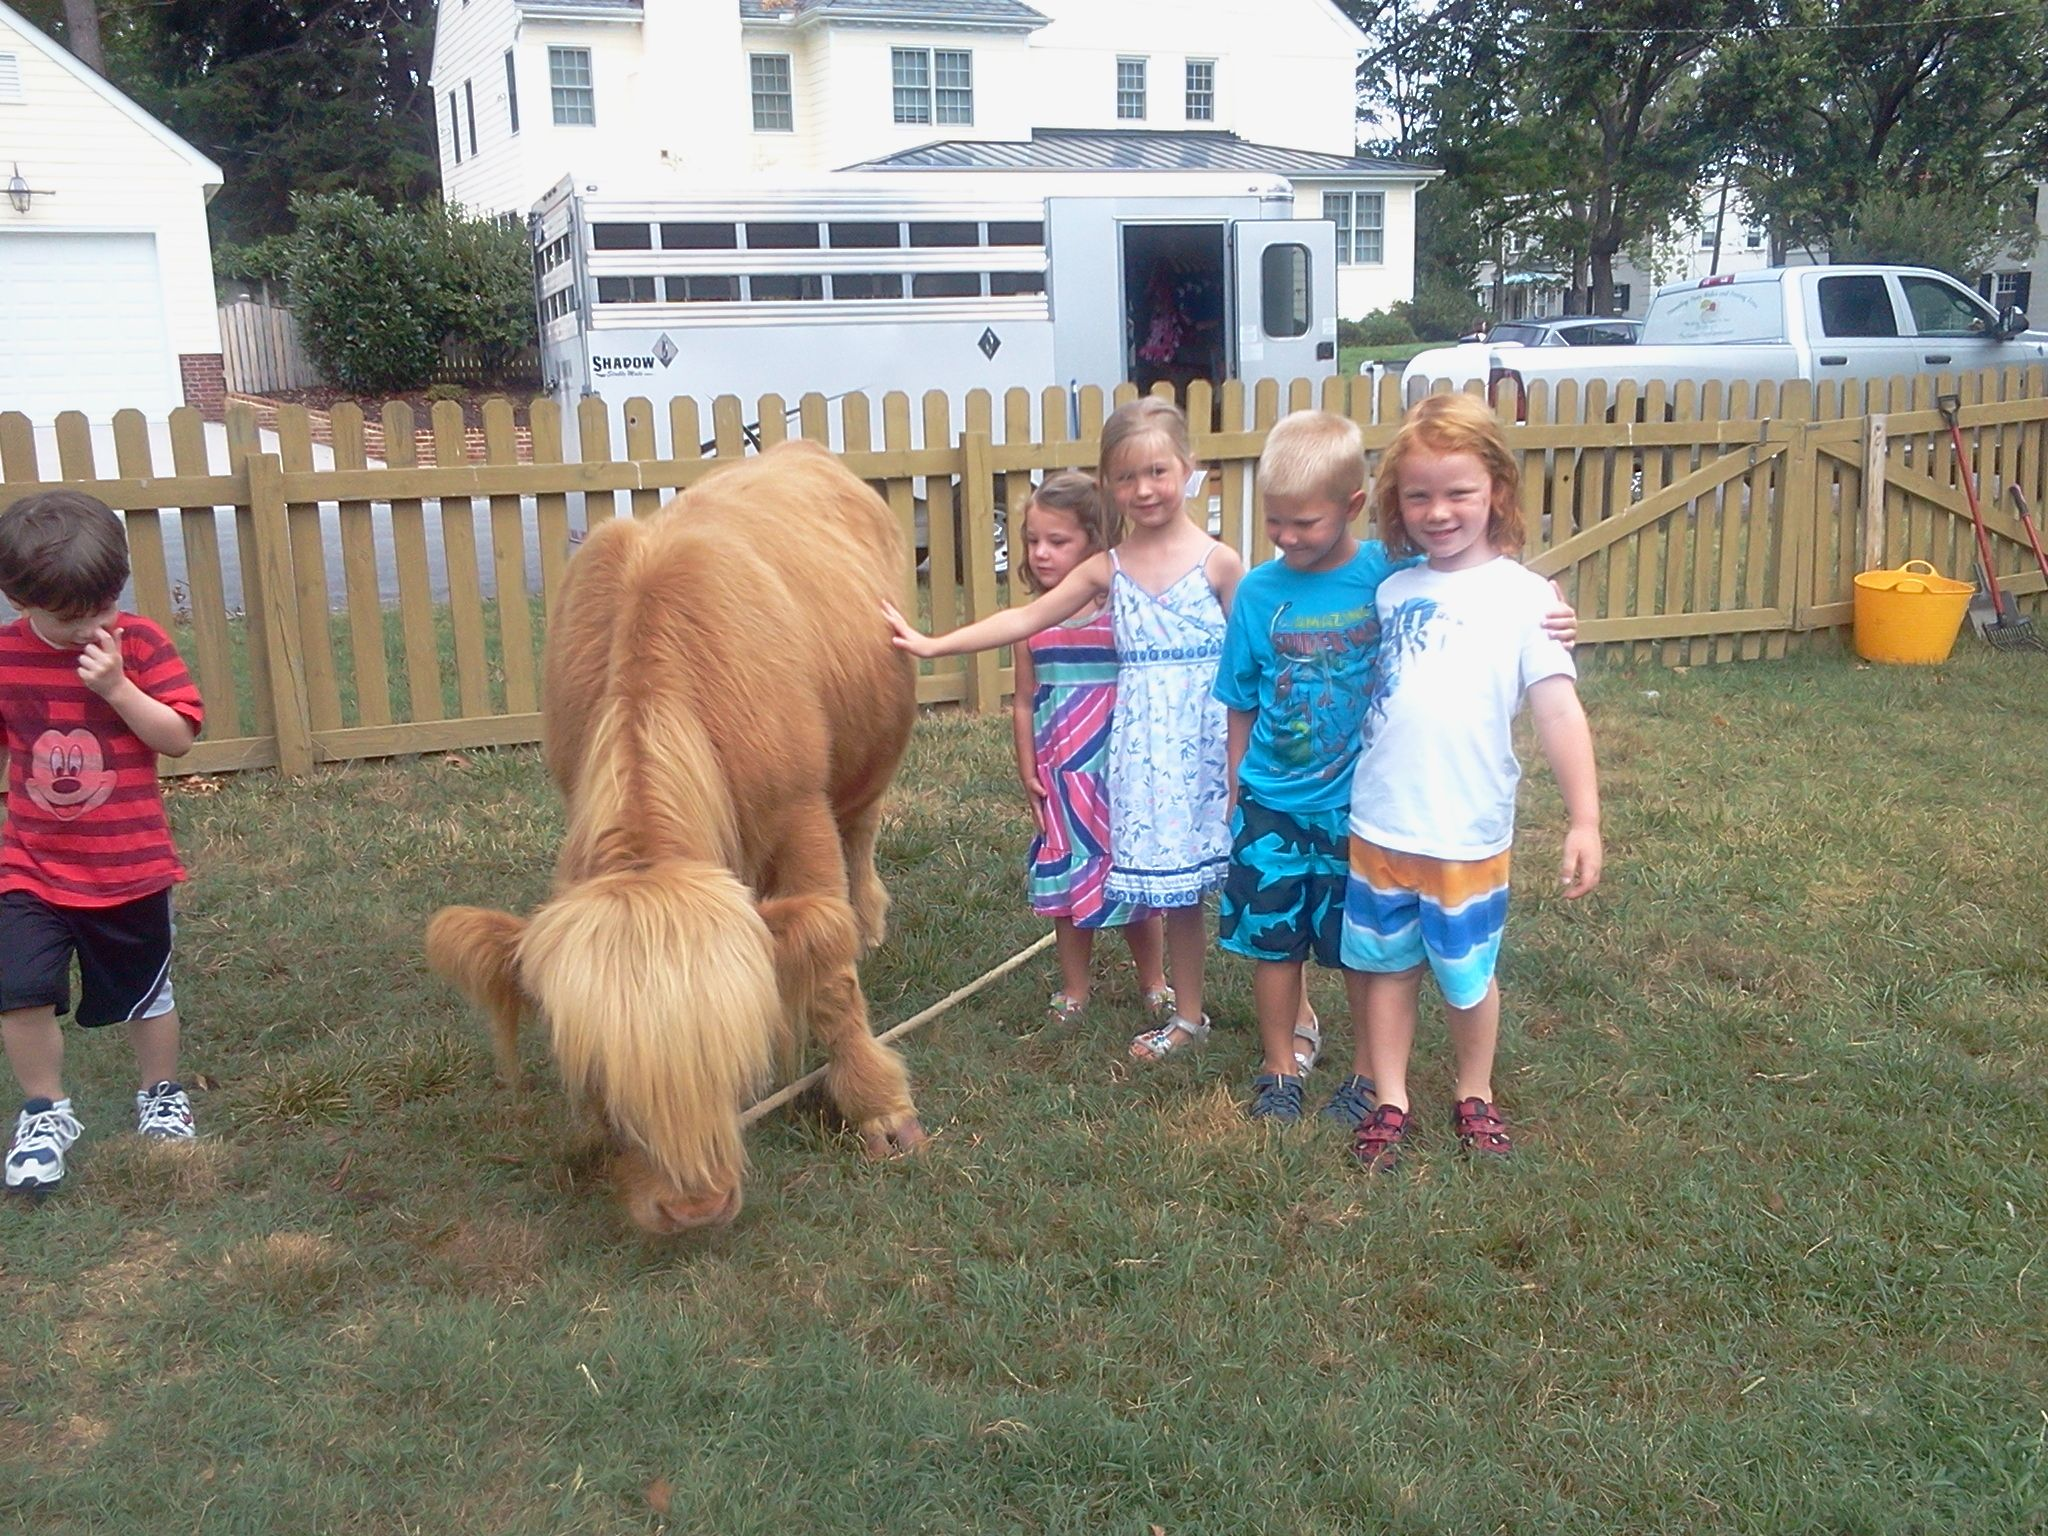 48++ Traveling petting zoo for birthday parties near me ideas in 2021